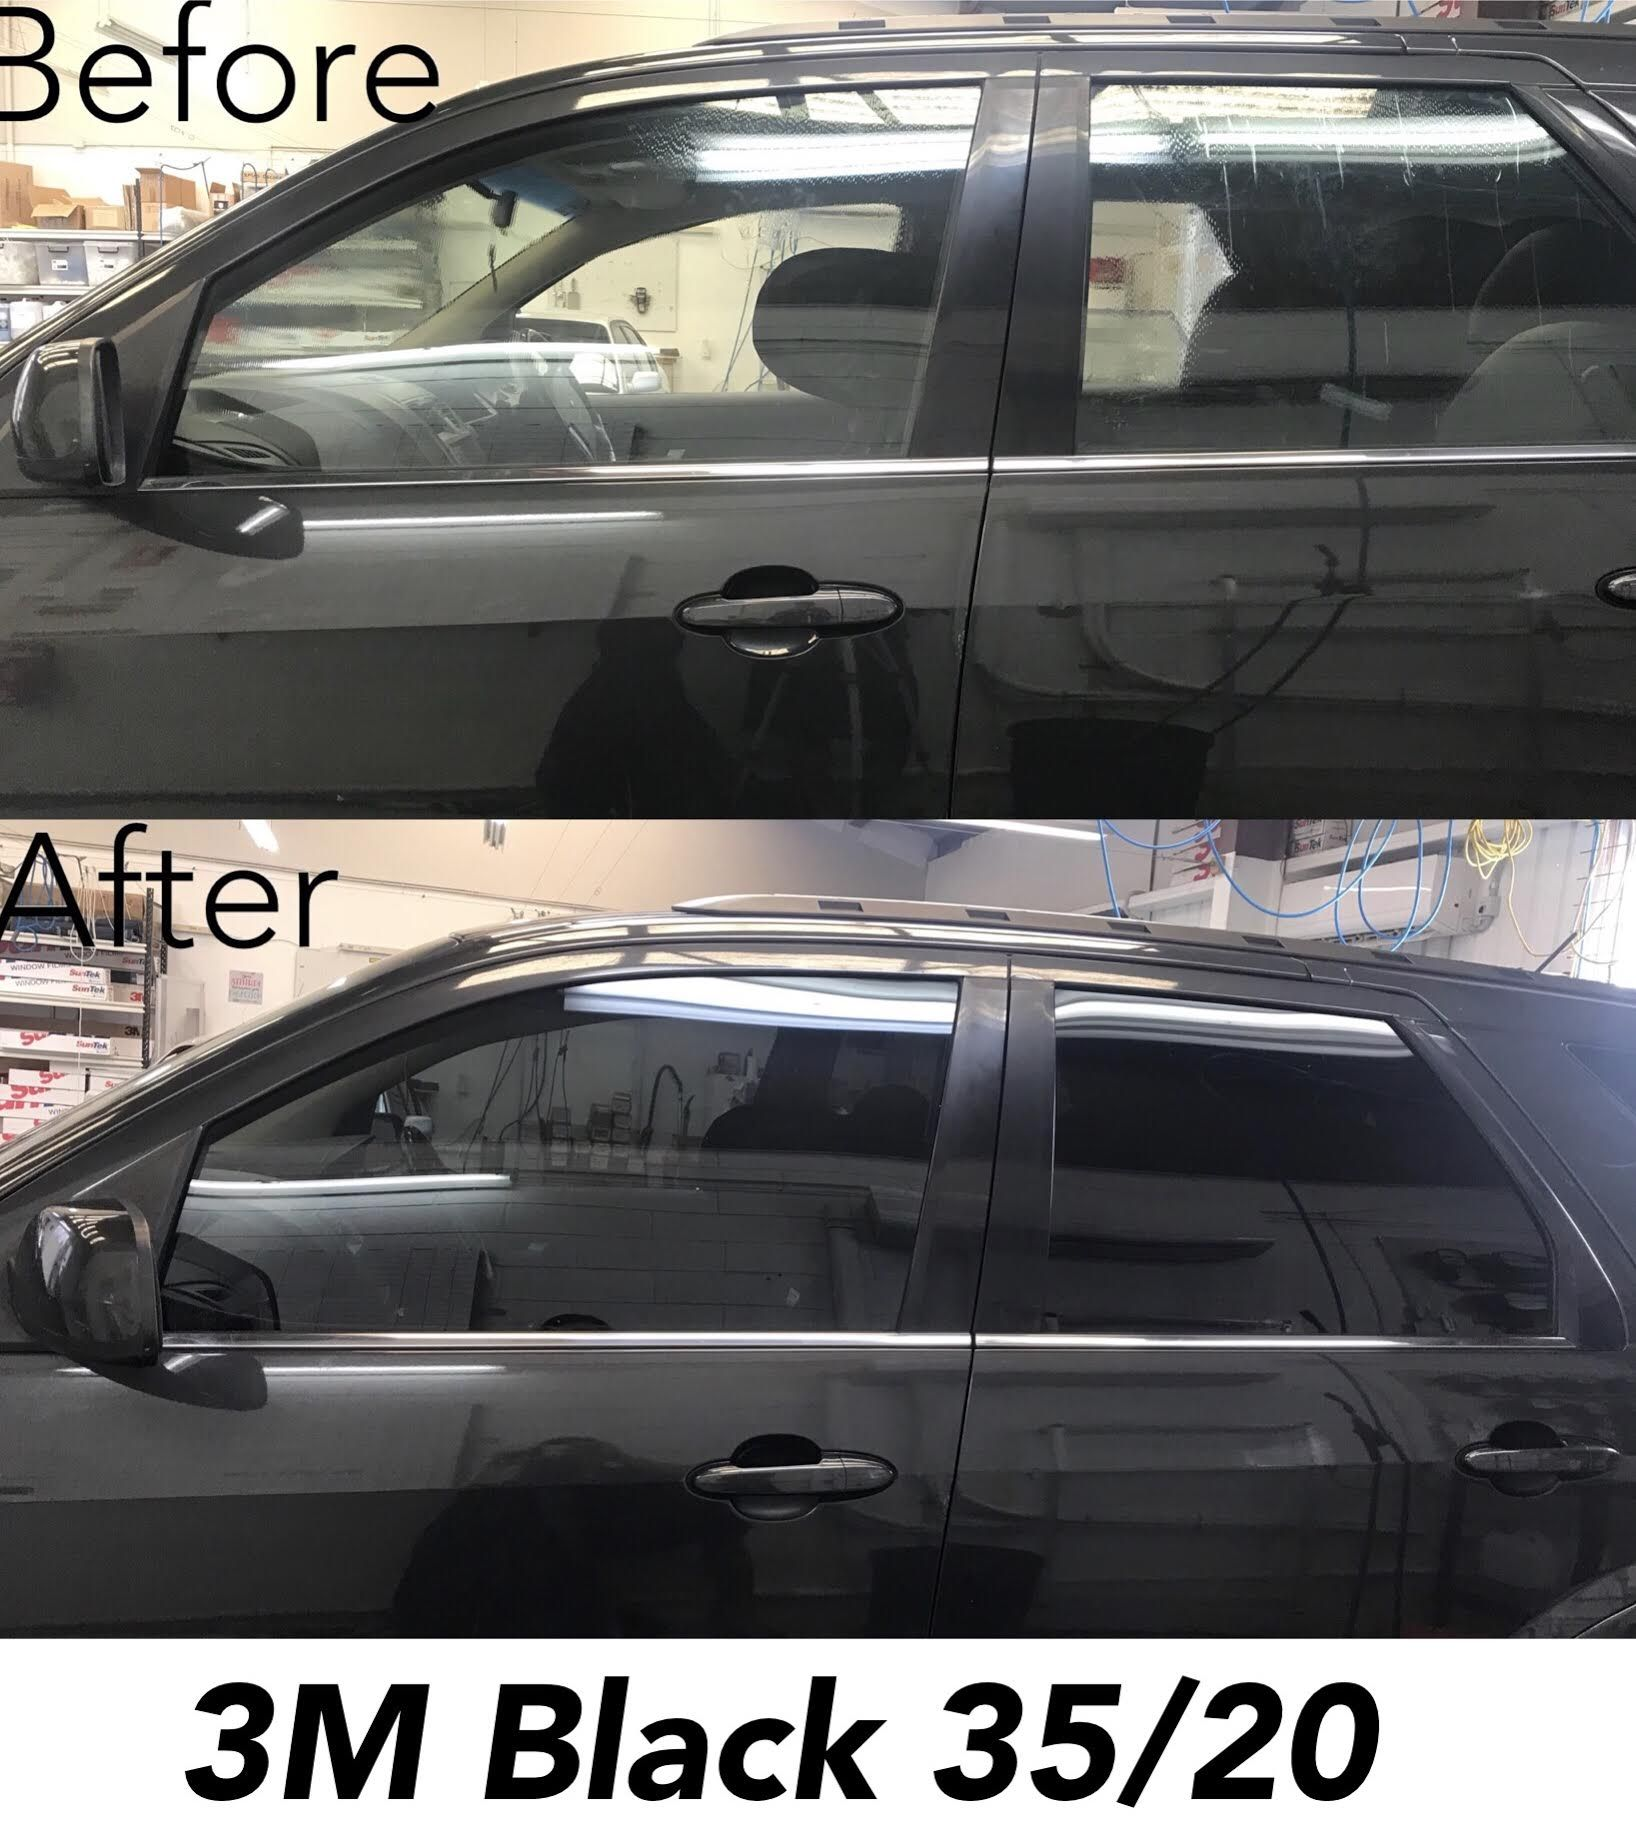 3m Black Window Tint 35 20 Before And After Photos Ford Territory Tinted Windows Car Tinted Windows Mobile Auto Repair